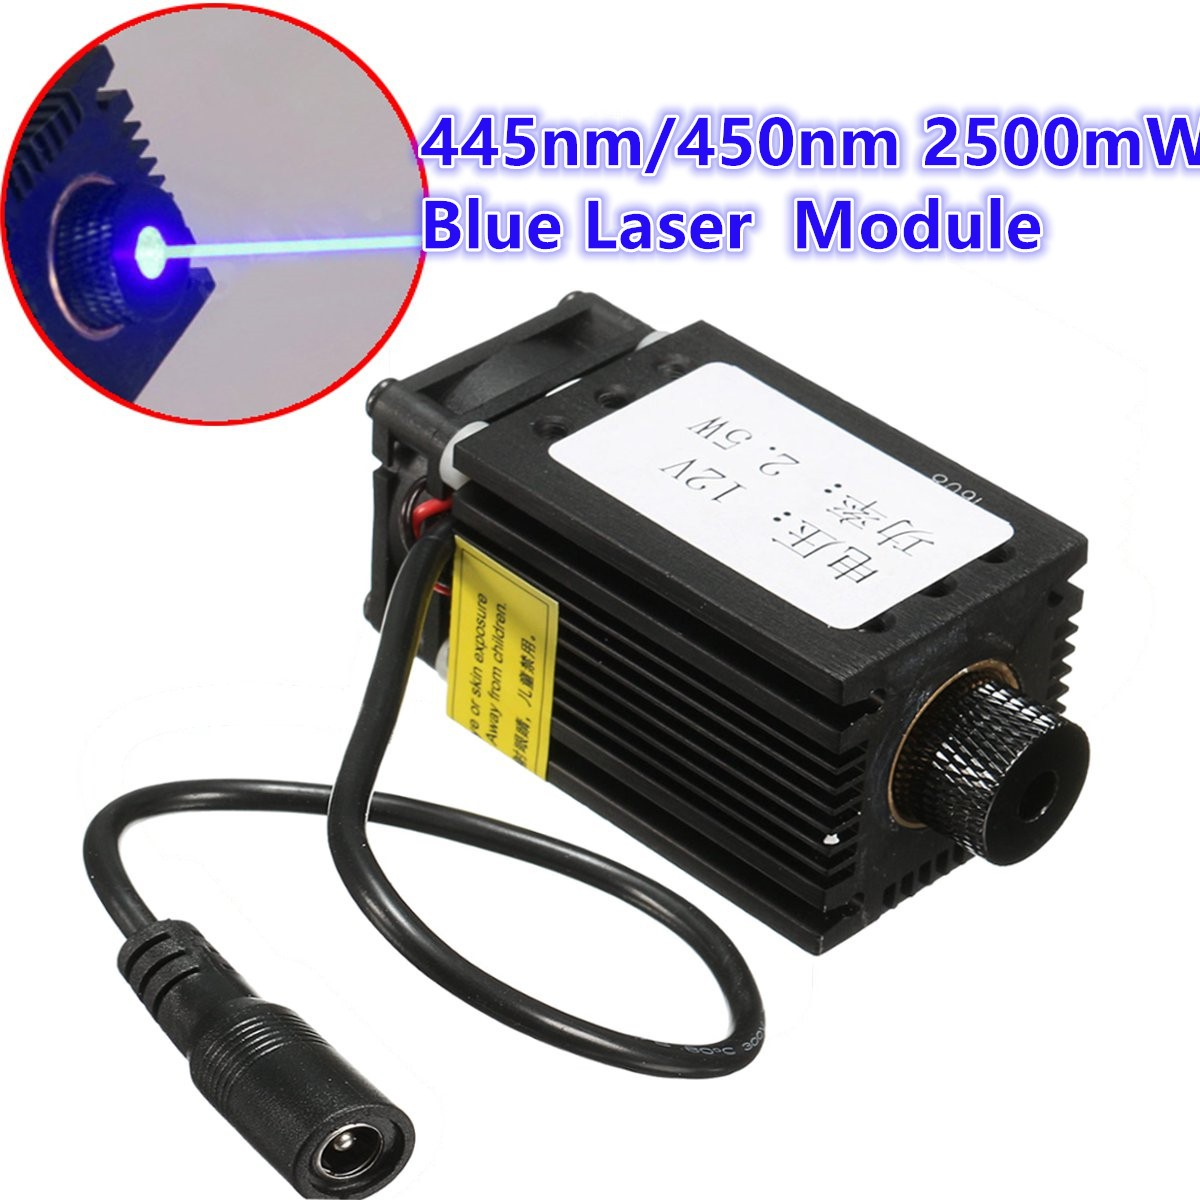 1Pcs 2500mW 2.5W 445nm 450nm Blue Laser Module For DIY CNC Laser Cutter Engraving Machine With Adaptor 1pcs vacuum cleaner storage package for dyson v6 v7 v8 dc62 suction head storage bag